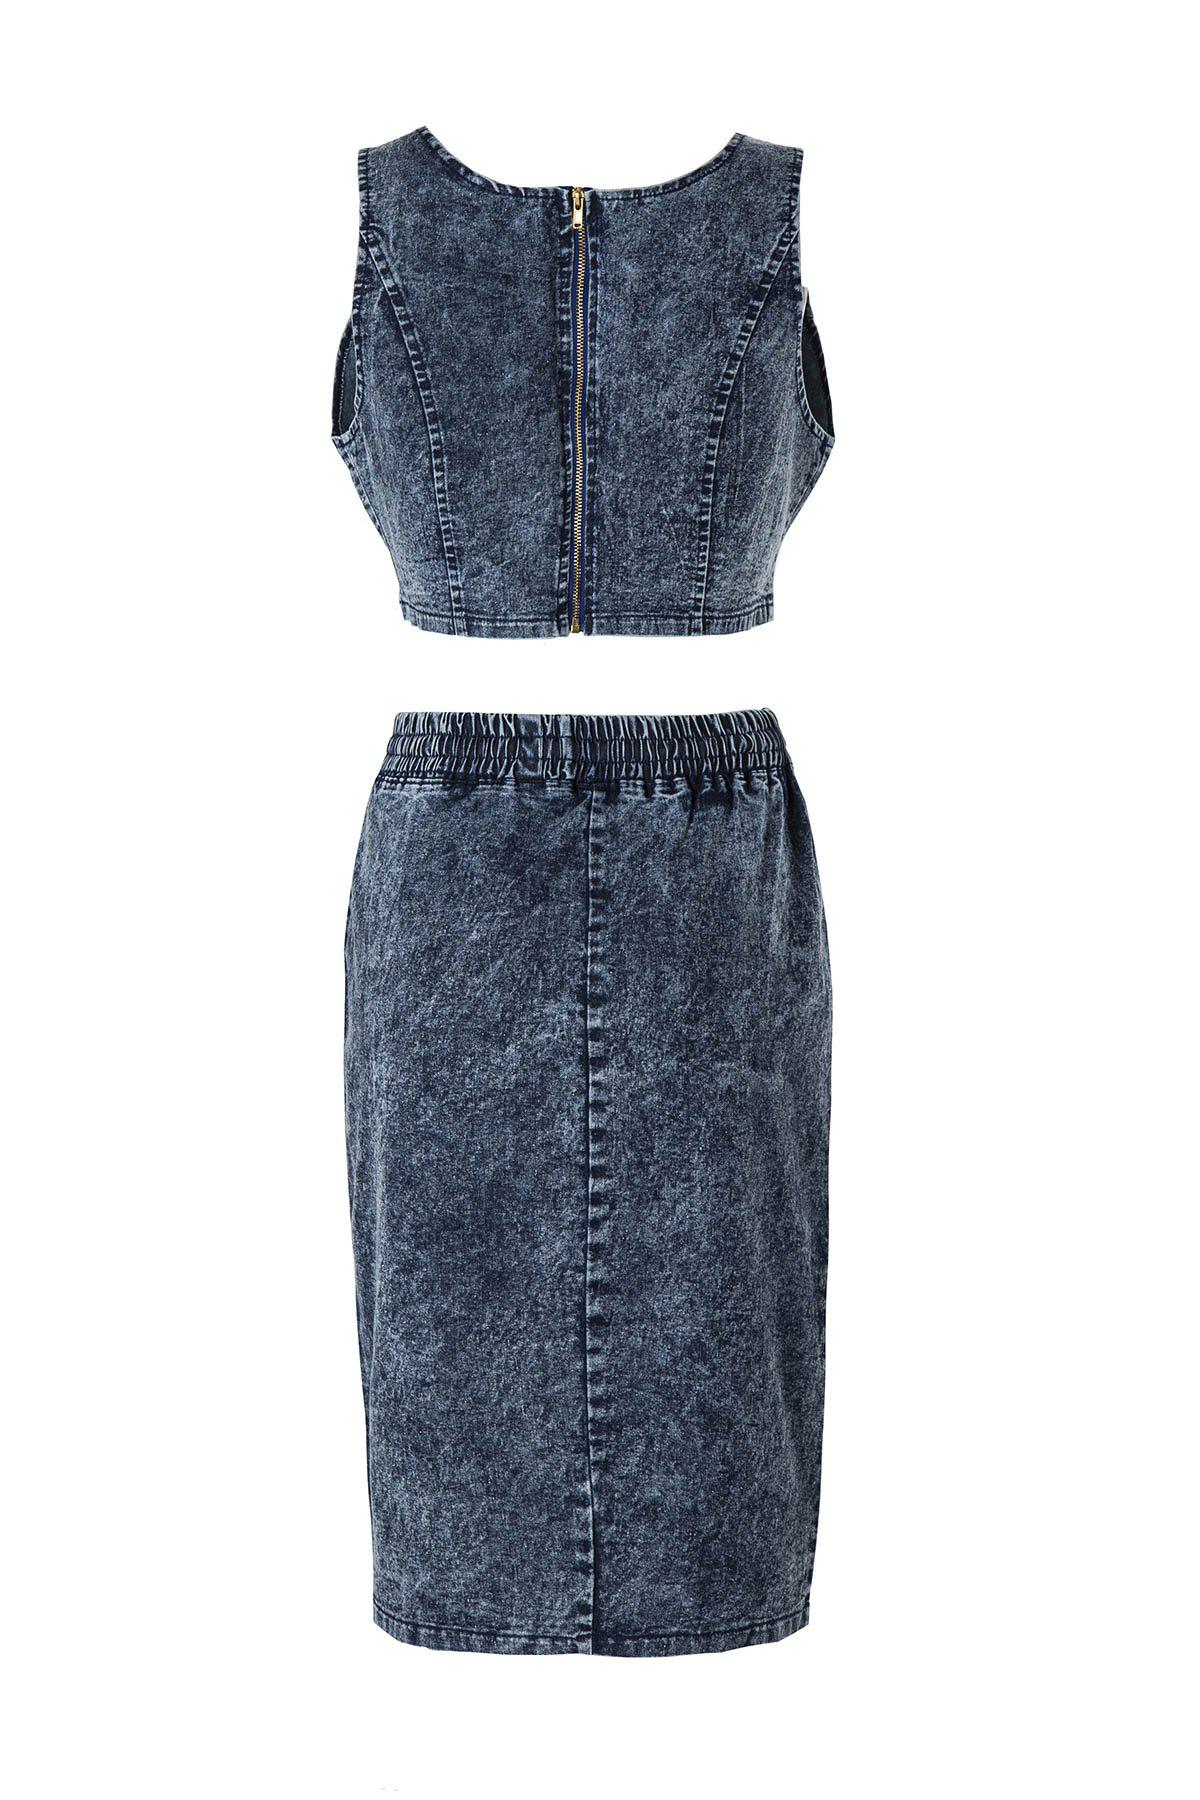 Sexy Crop V-Neck Bleu Zippered Denim Top + Side jupe fendue femmes s 'Twinset - Denim Bleu L